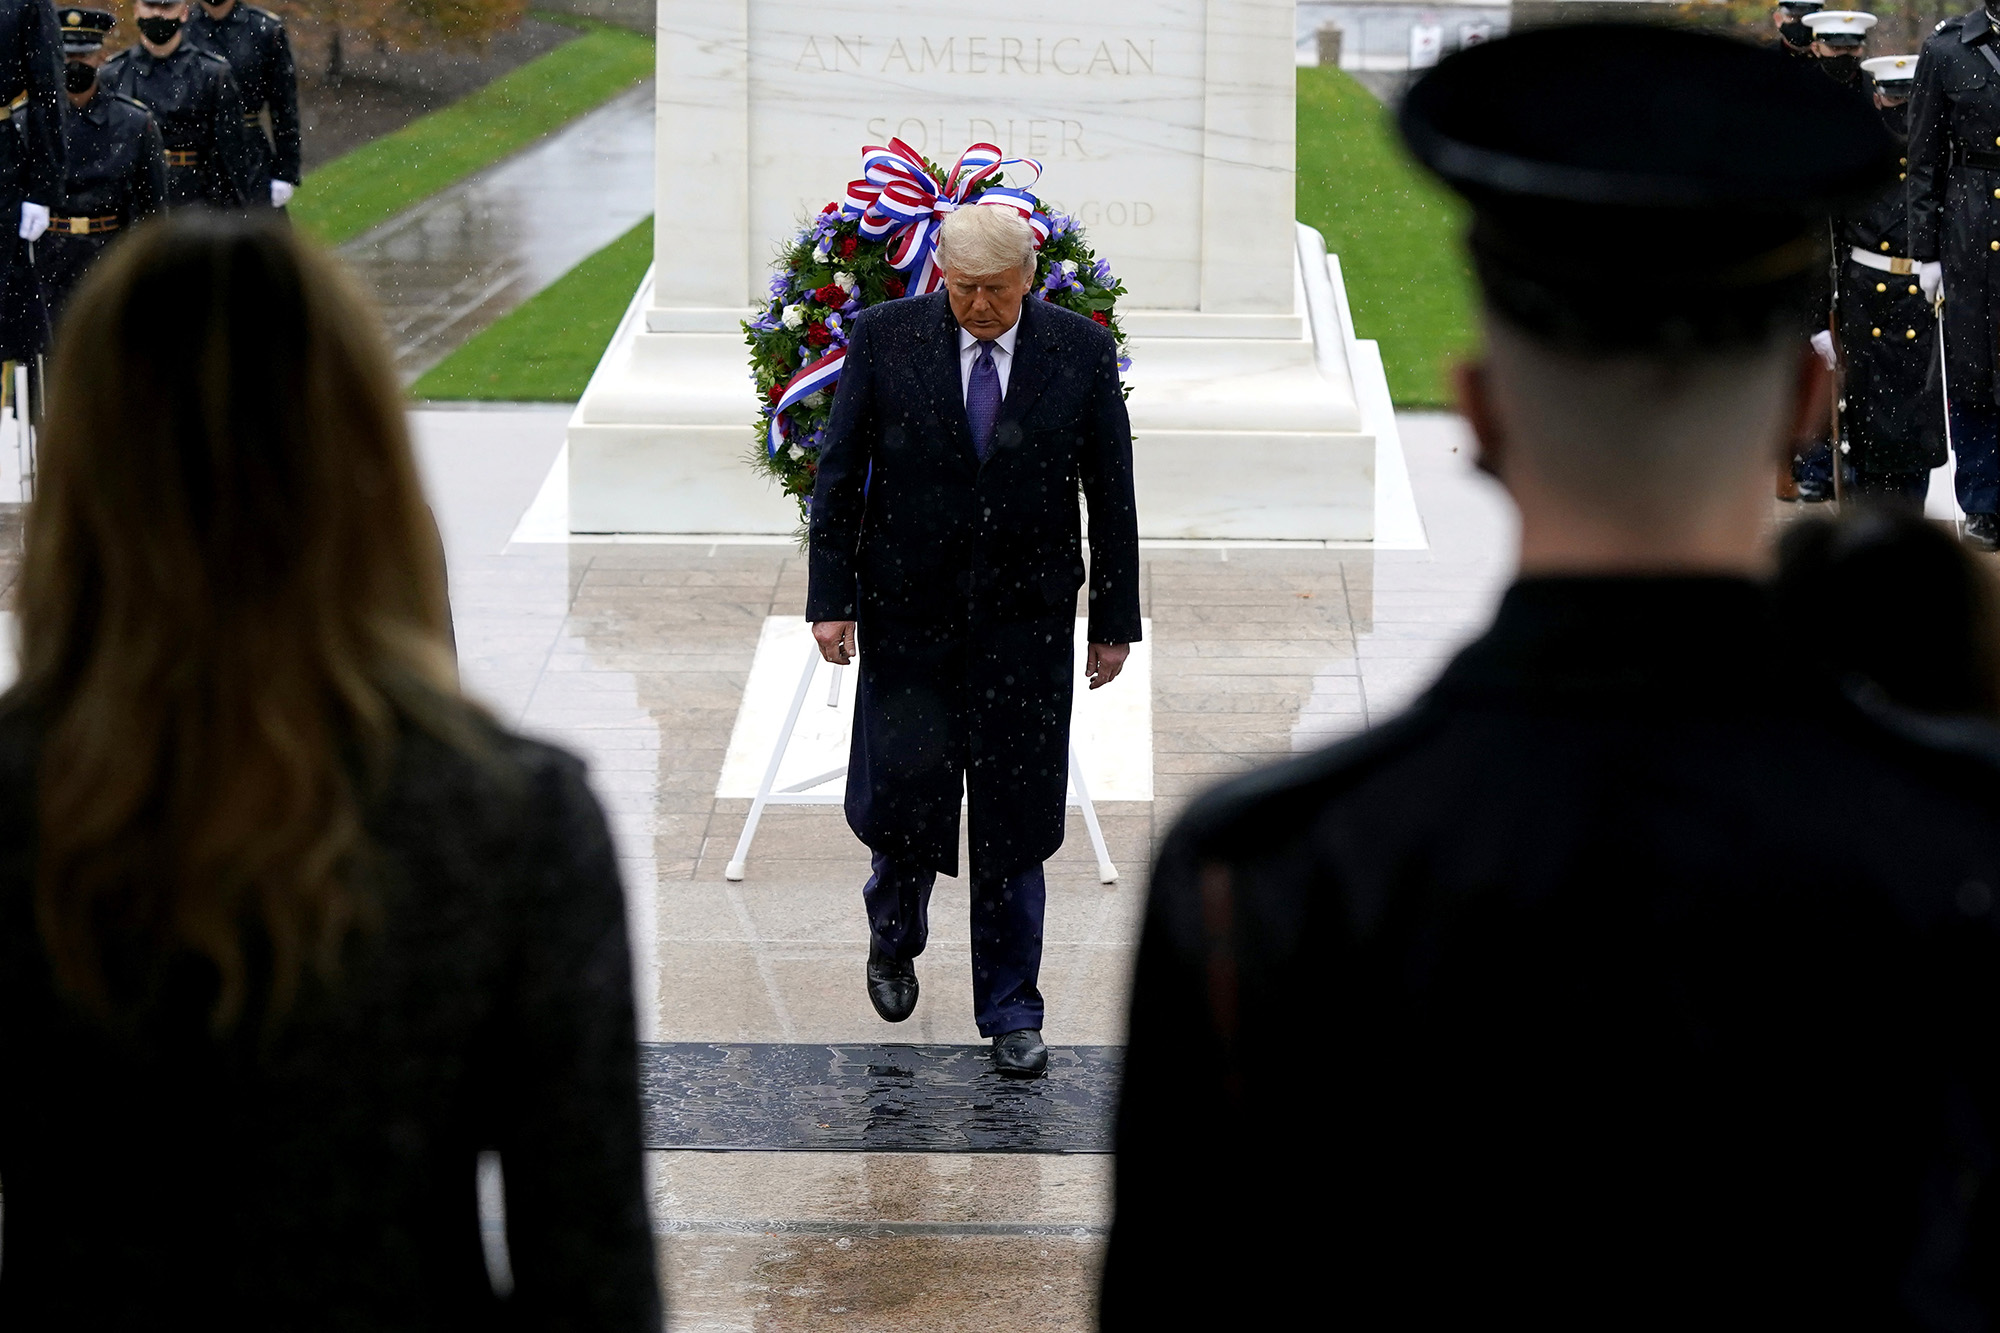 President Donald Trump participates in a Veterans Day wreath laying ceremony at the Tomb of the Unknown Soldier at Arlington National Cemetery in Arlington, Va., Wednesday, Nov. 11, 2020. (Patrick Semansky/AP)